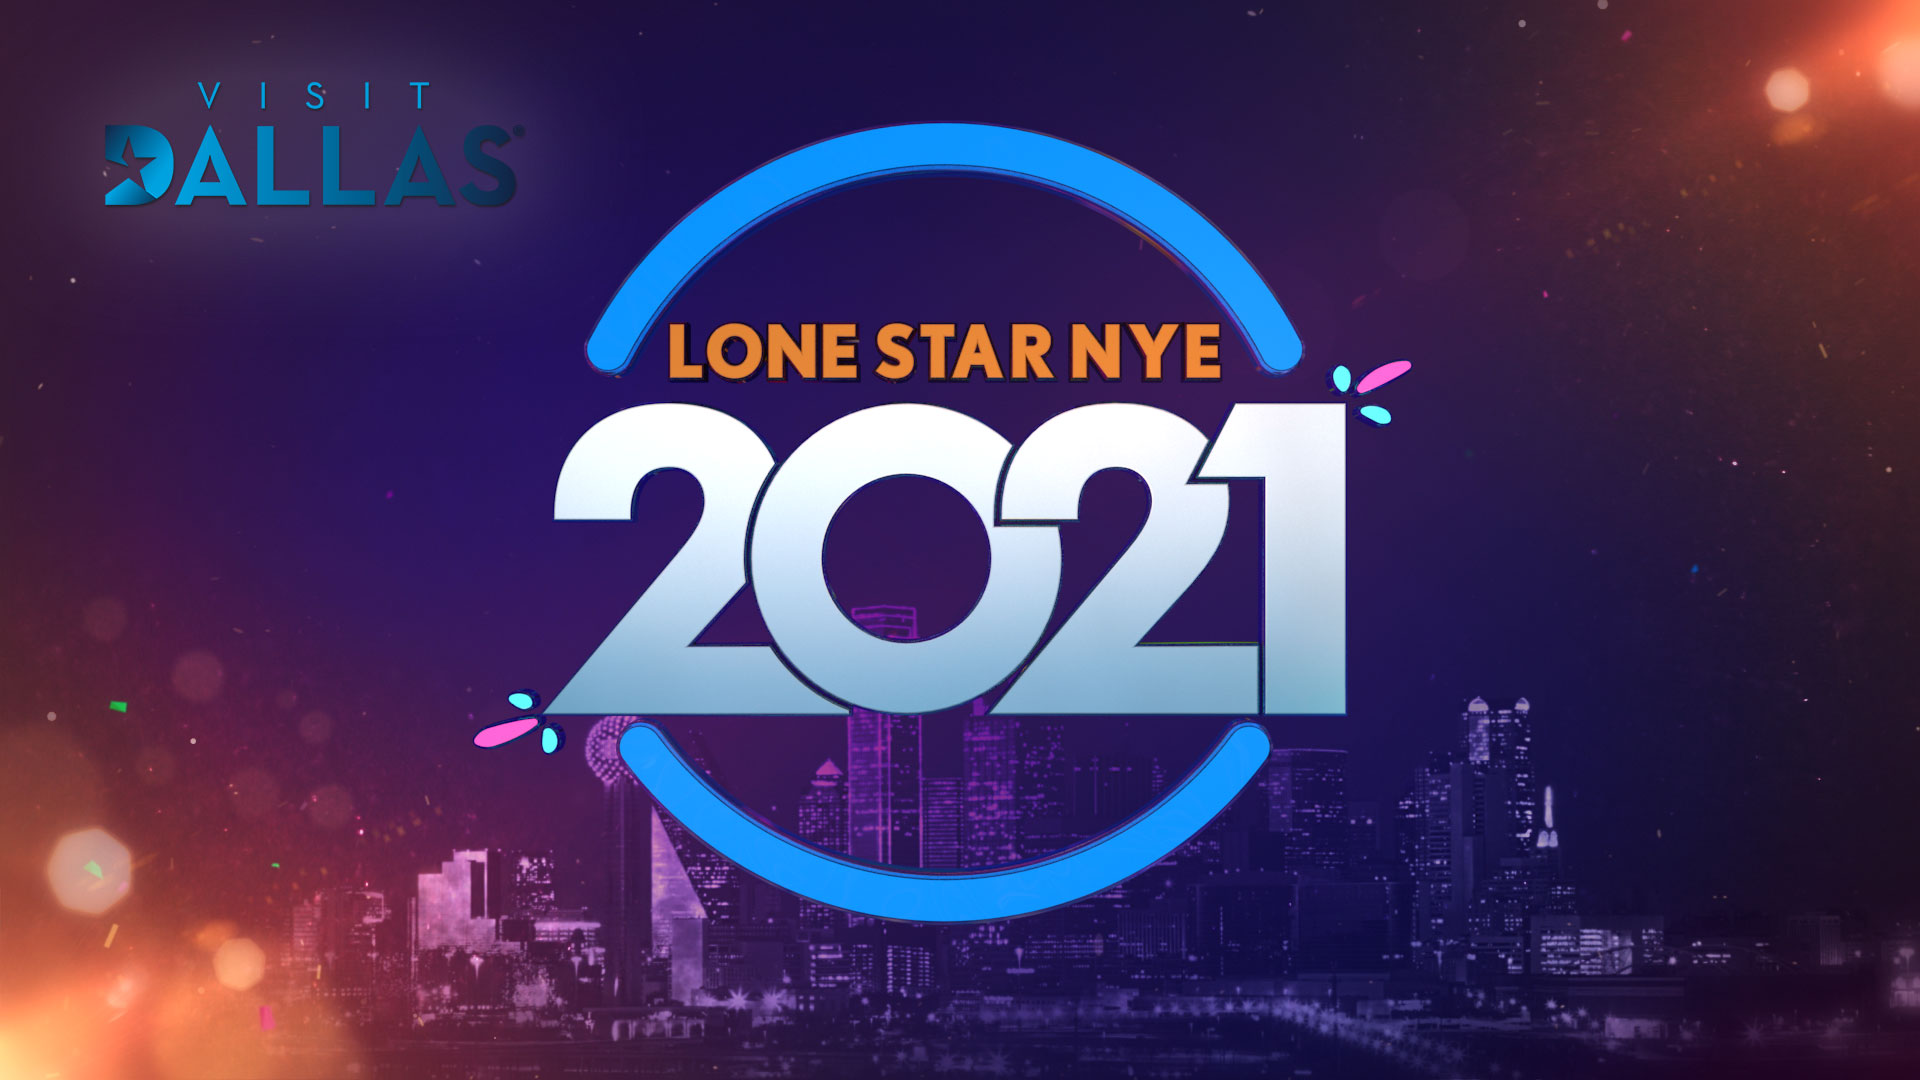 """Nexstar partners with KXAS in Dallas to broadcast """"Lone Star NYE 2021"""" 